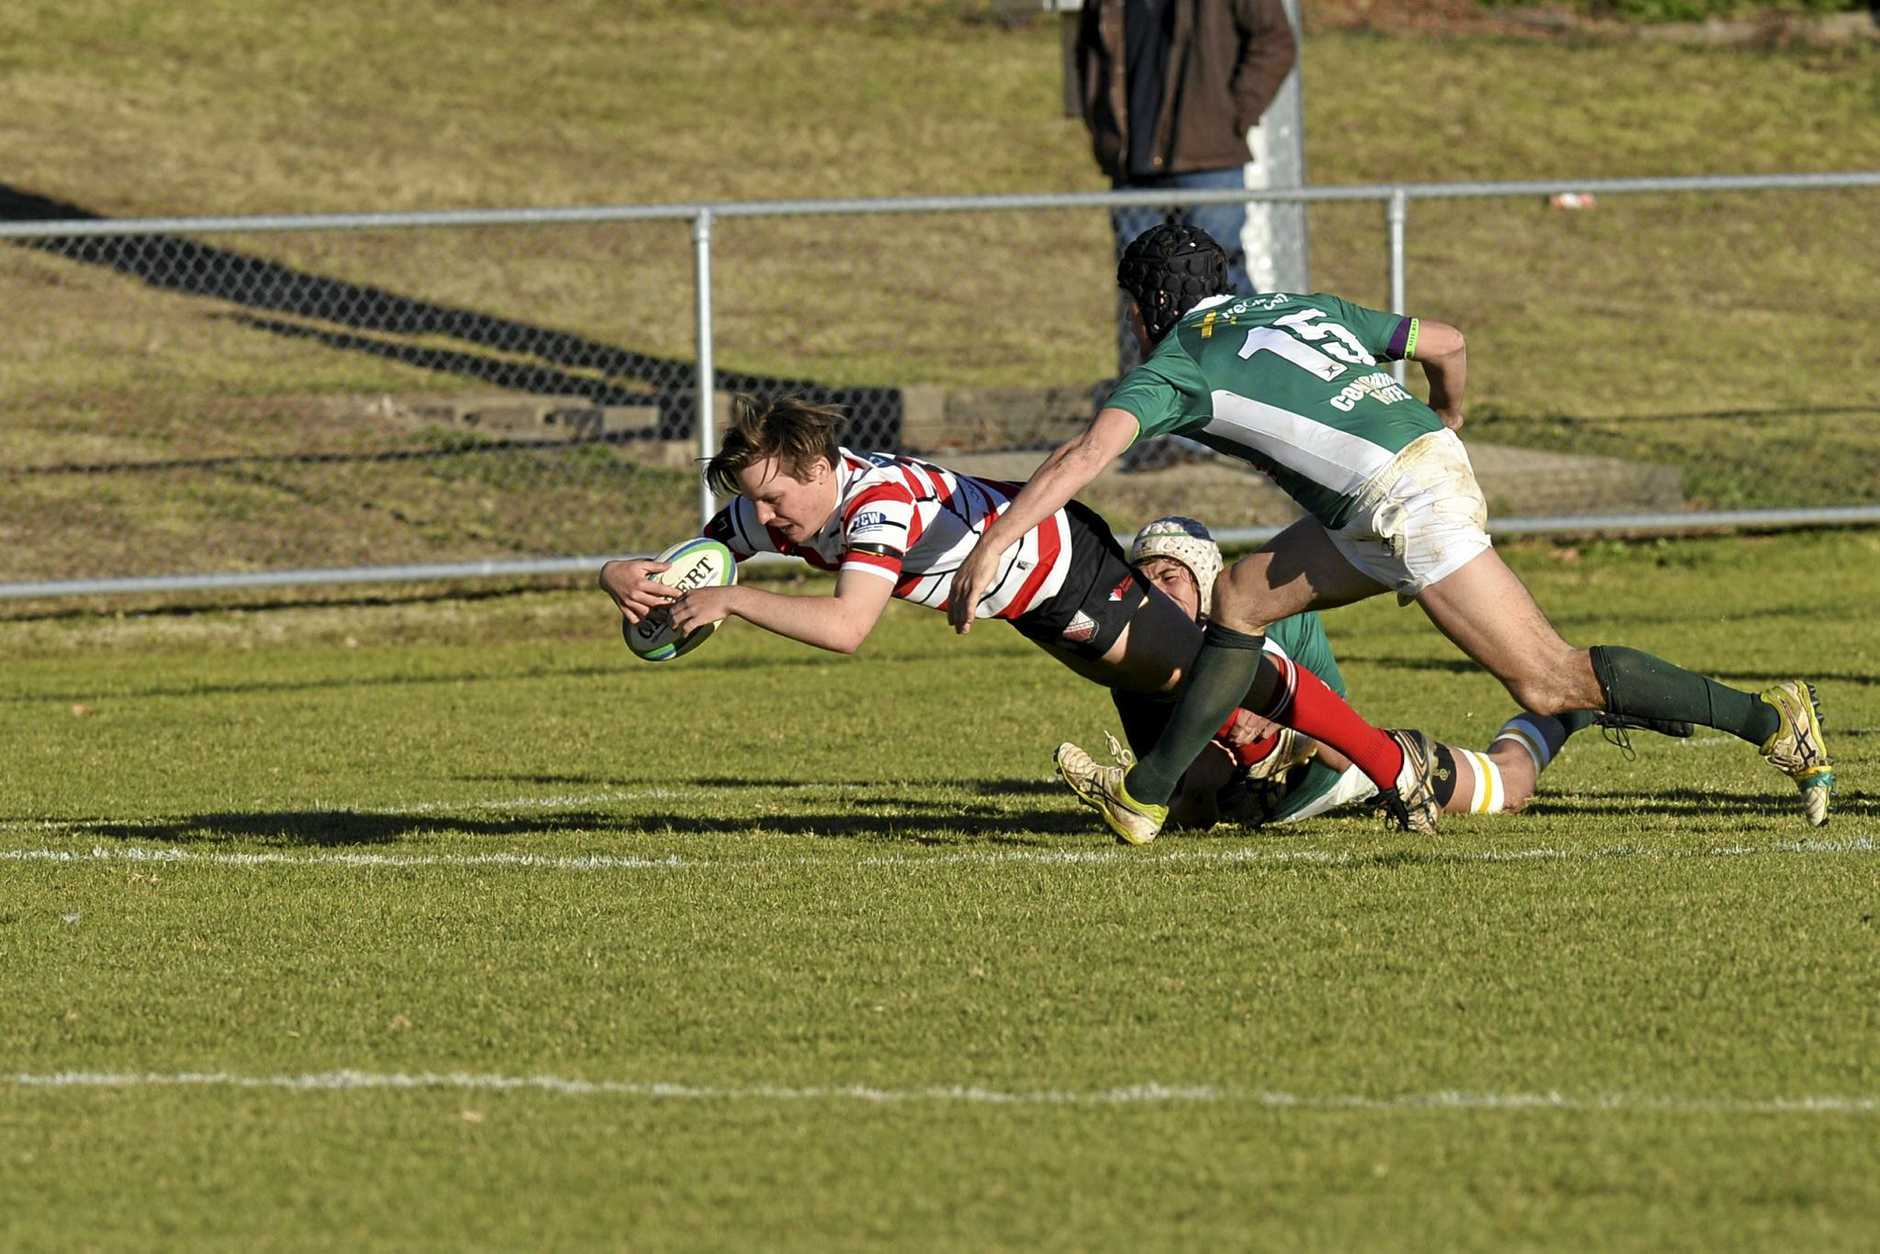 Jakeb Rice opens the second-half scoring with a try to Toowoomba Rangers against Condamine in Downs Rugby Risdon Cup round 18 rugby union at Gold Park, Saturday, August 5, 2017.